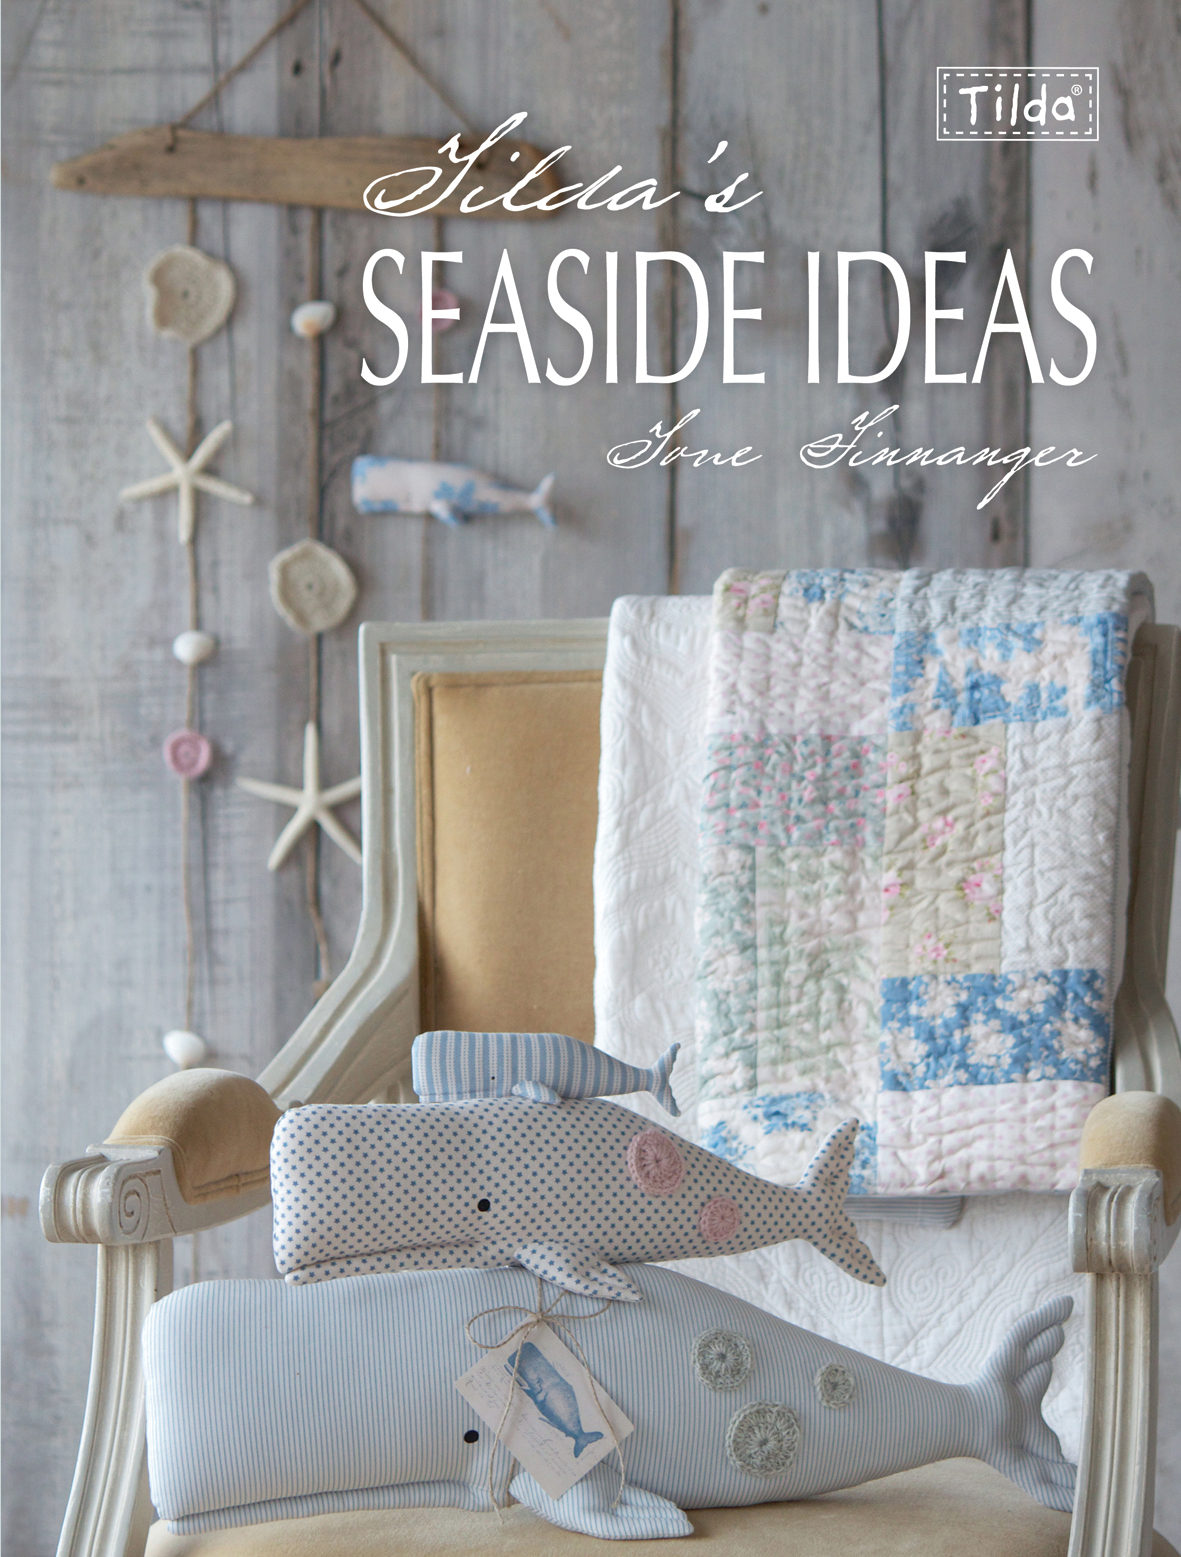 Tilda S Seaside Ideas Tone Finnanger Amazing Craft